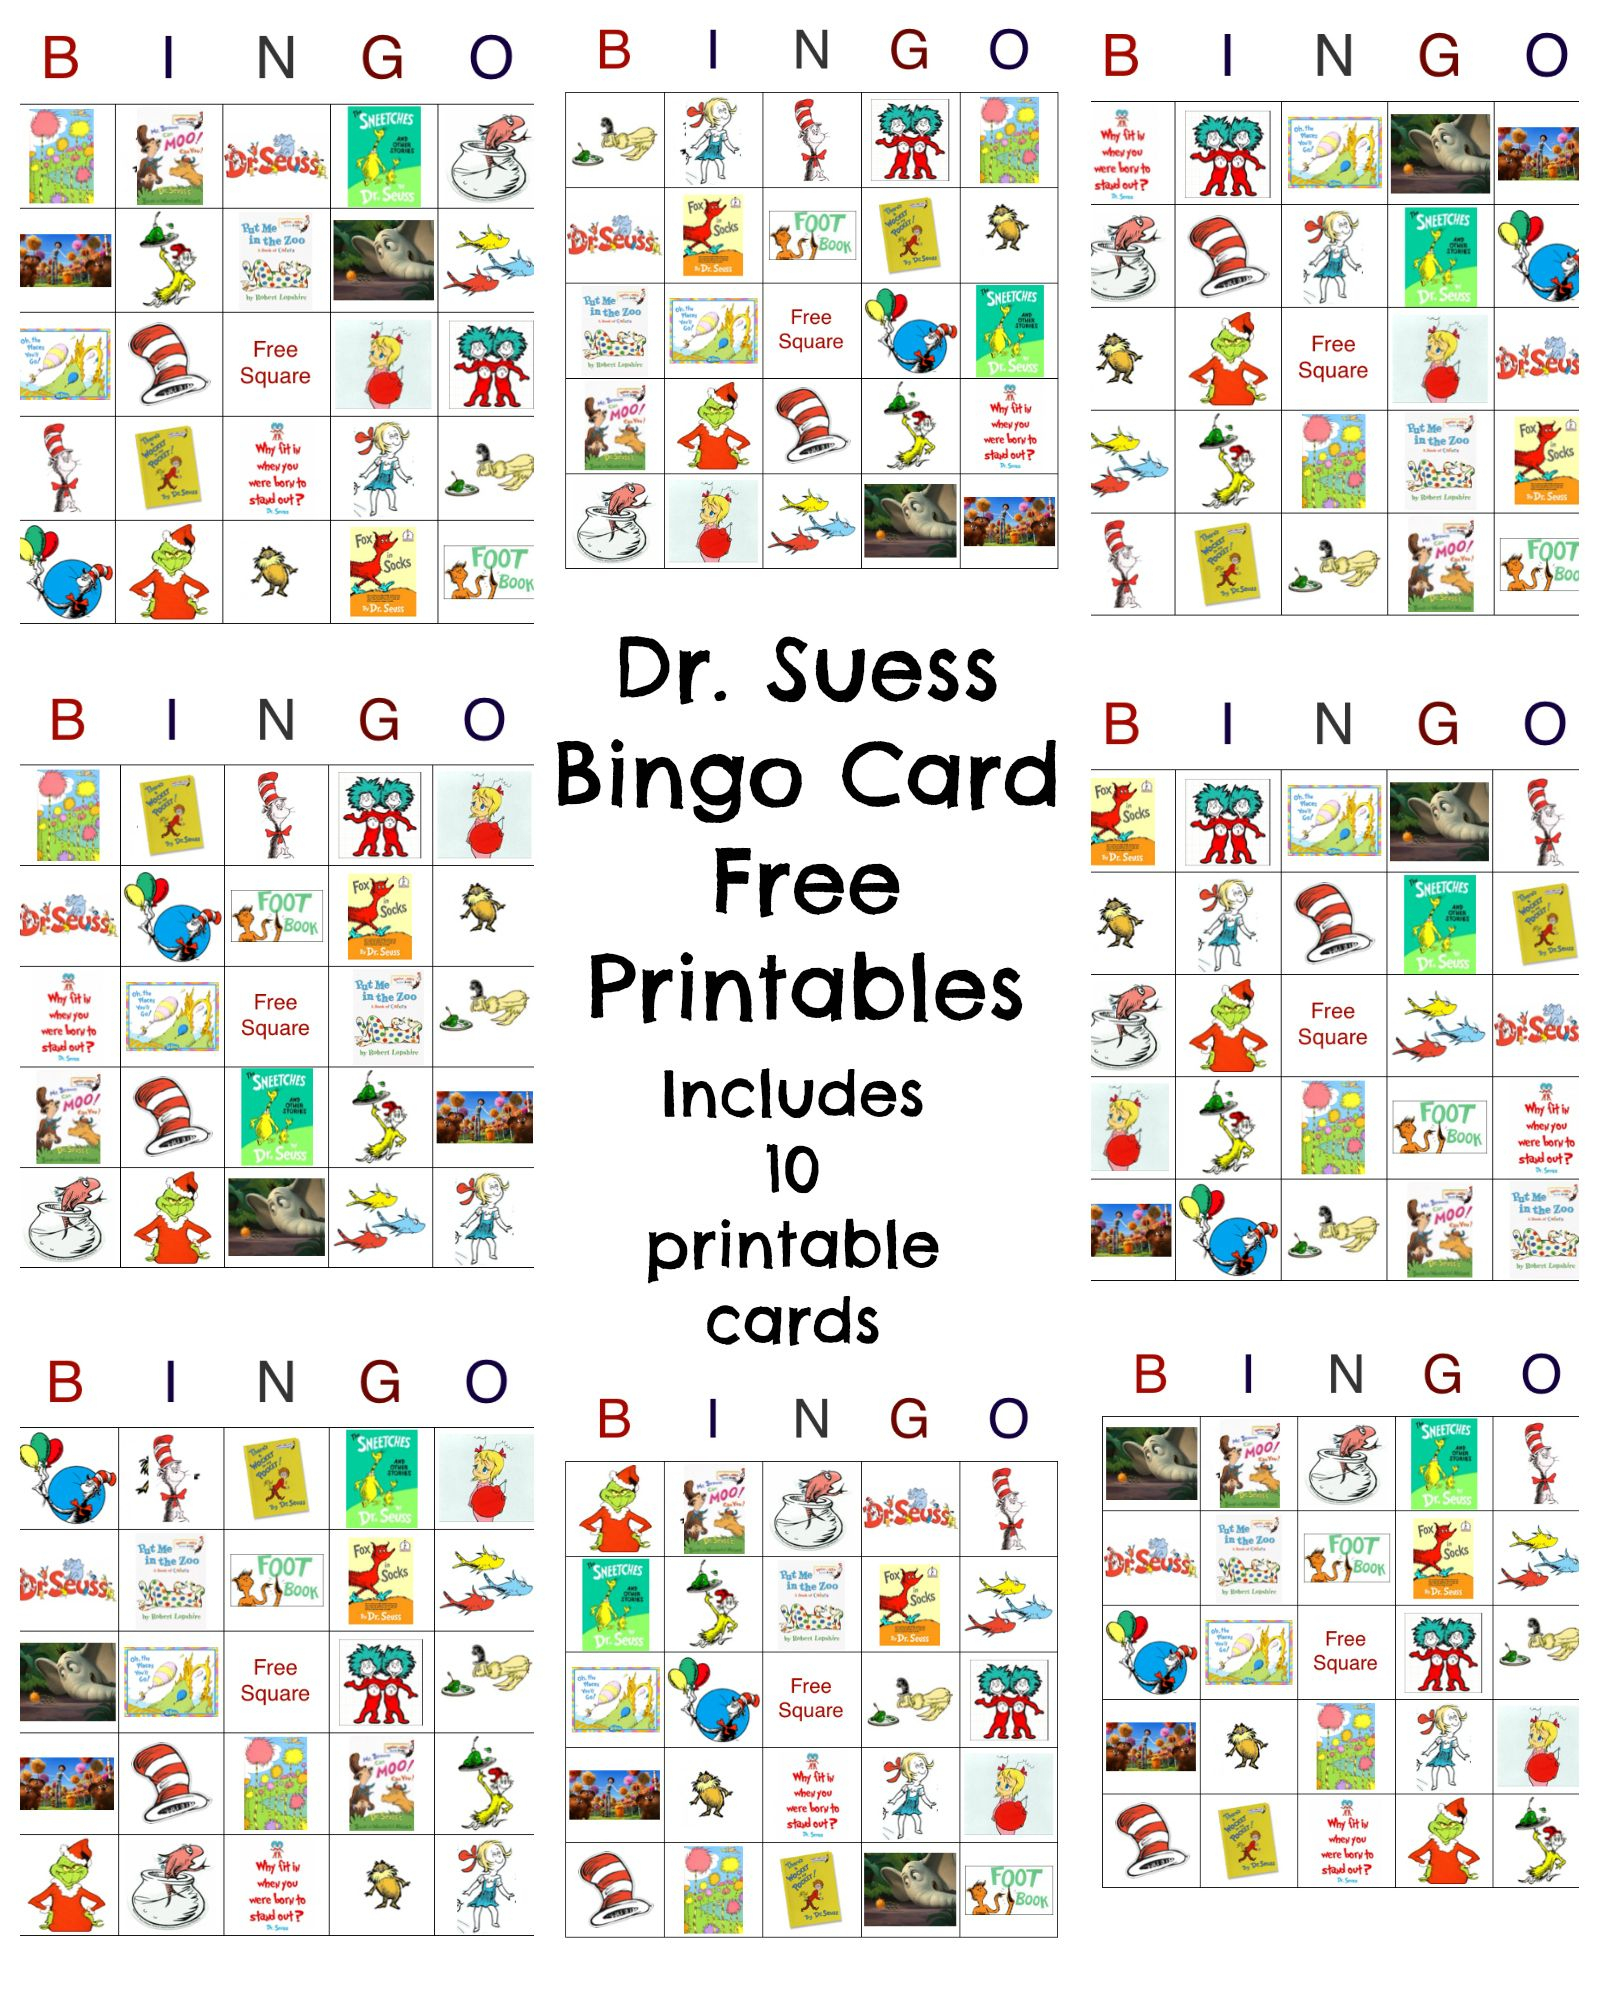 Dr Seuss Bingo Game Free Printable | Best Crafts And Diy | Pinterest - Free Printable Dr Who Birthday Card